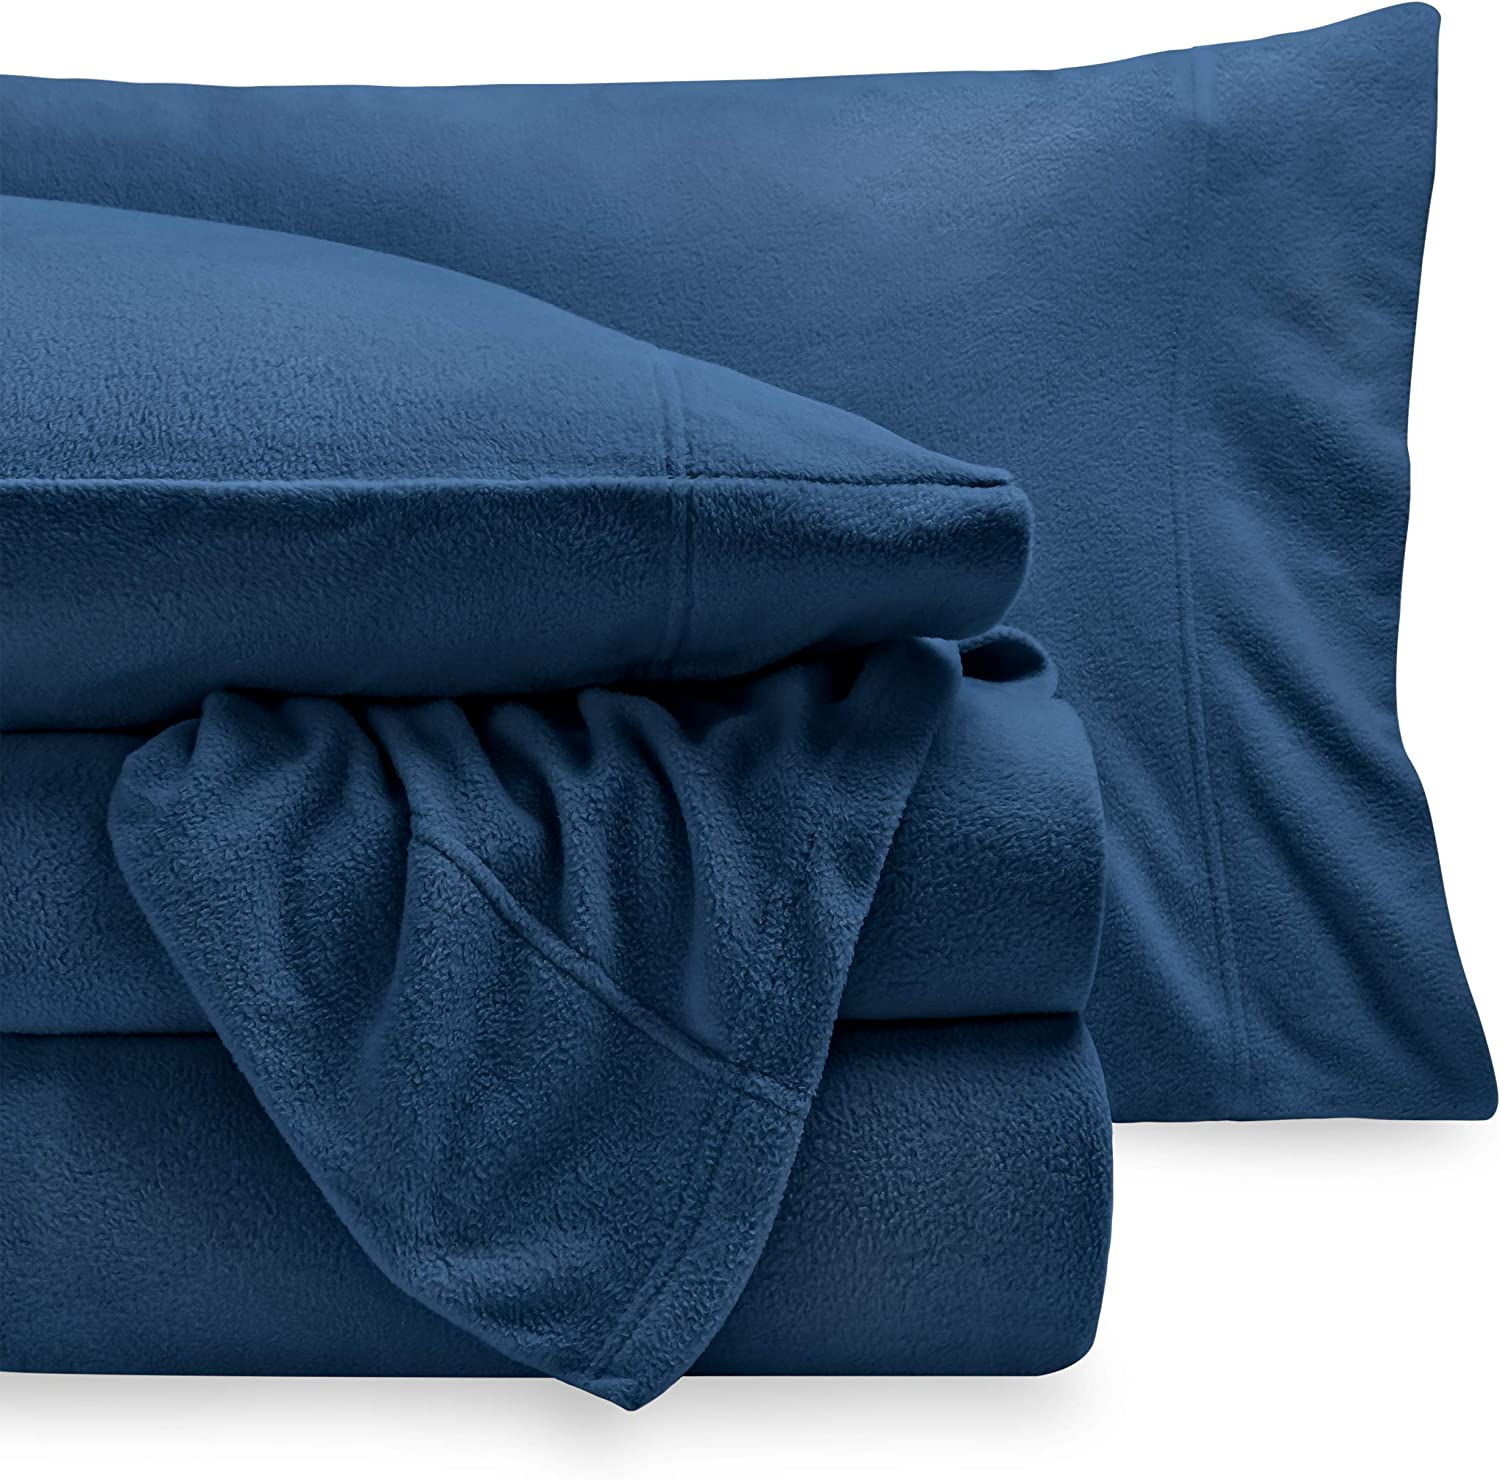 Bare Home Super Soft Fleece Sheet Set - King Size - Extra Plush Polar Fleece, Pill-Resistant Bed Sheets - All Season Cozy Warmth, Breathable & Hypoallergenic (King, Dark Blue)